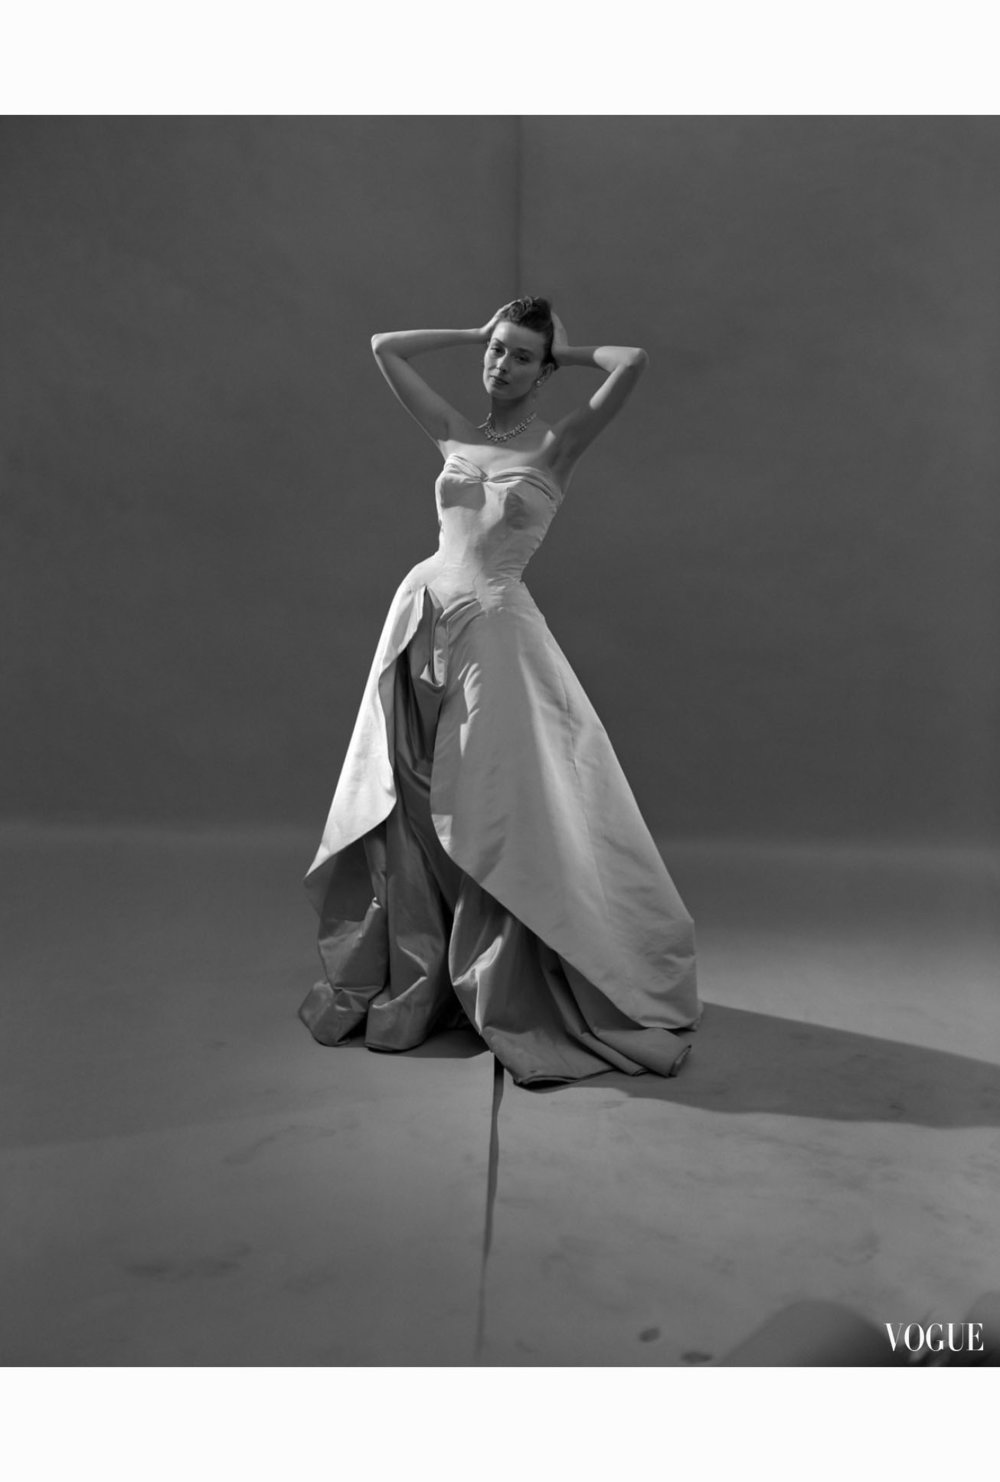 evening-dress-vogue-1948-c2a9-cecil-beaton-1948.jpg